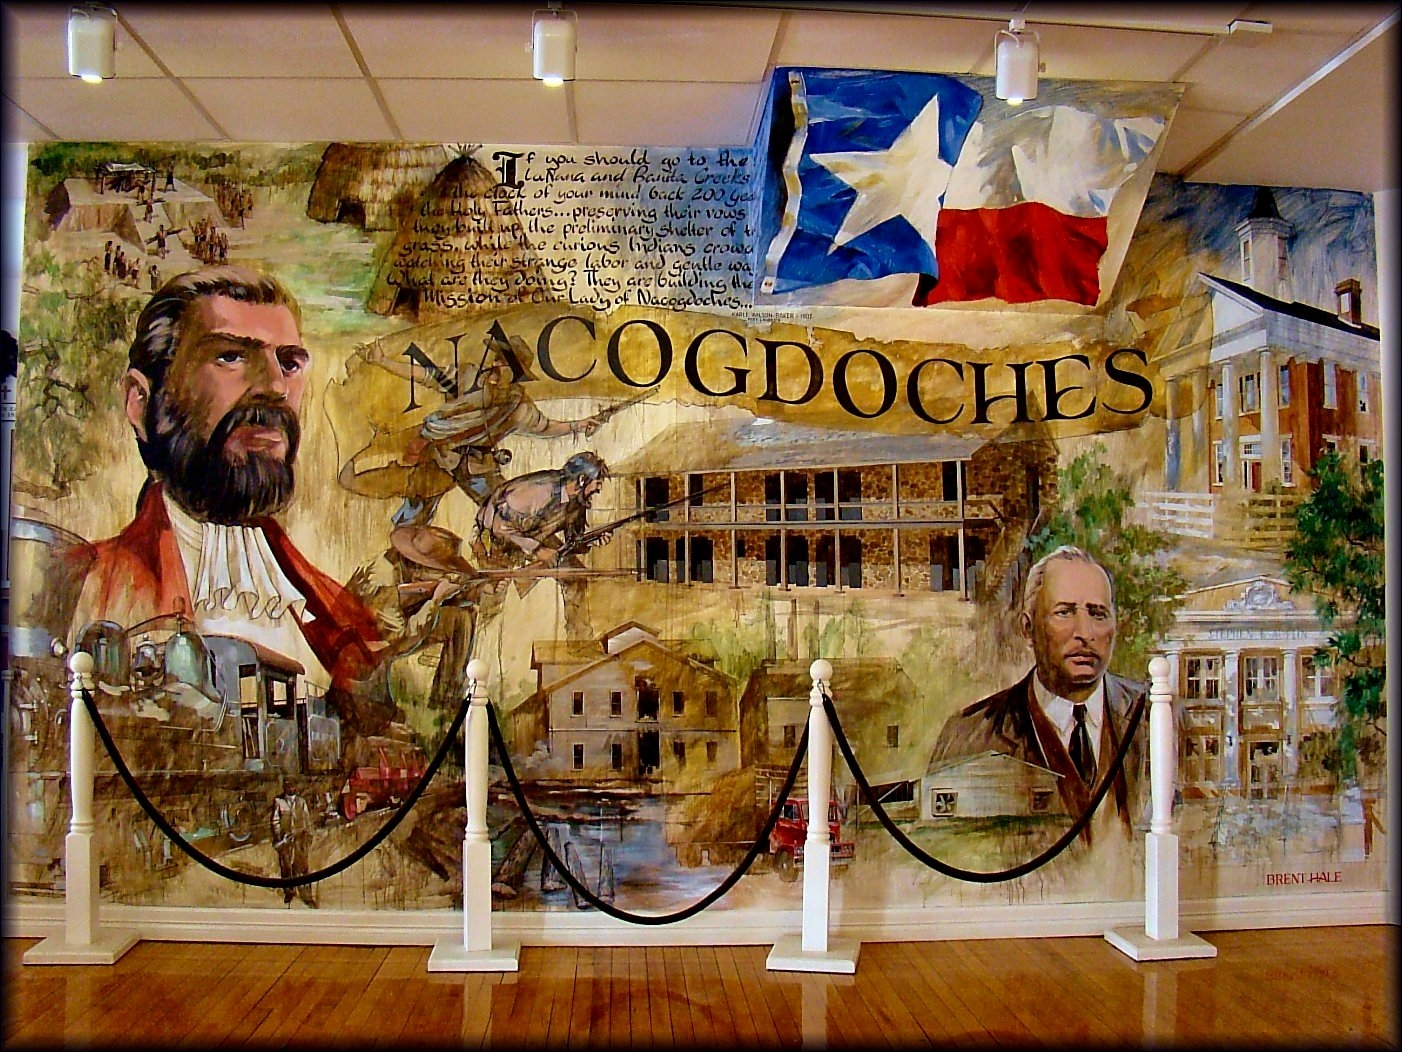 Picture of the Mural at the Historic Town Center in Nacogdoches